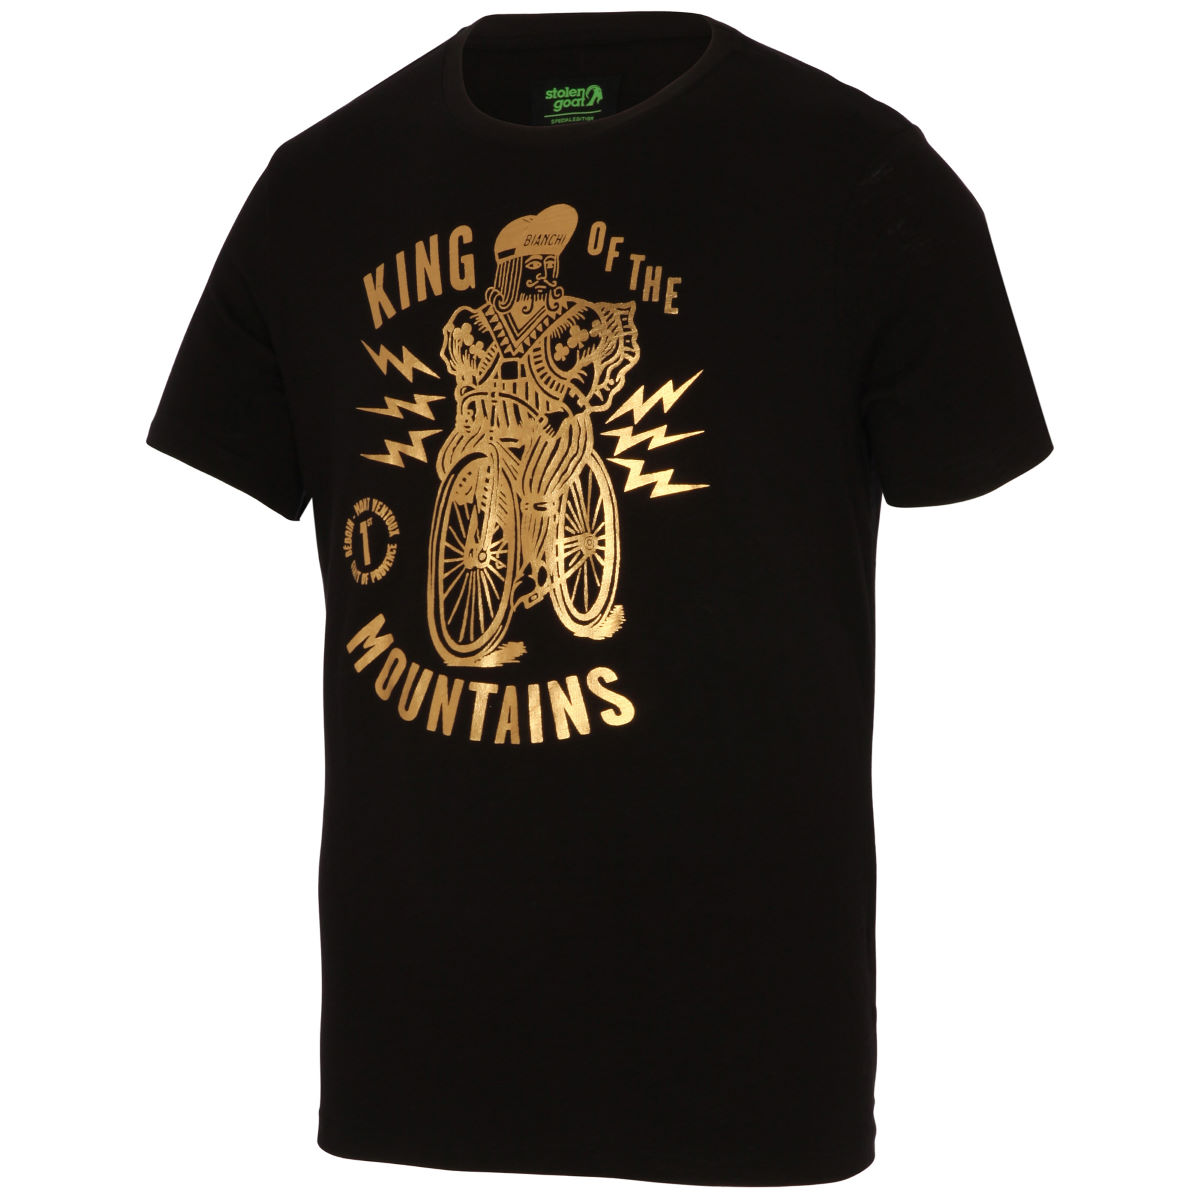 T-shirt Stolen Goat King of the Mountains - XL Noir T-shirts